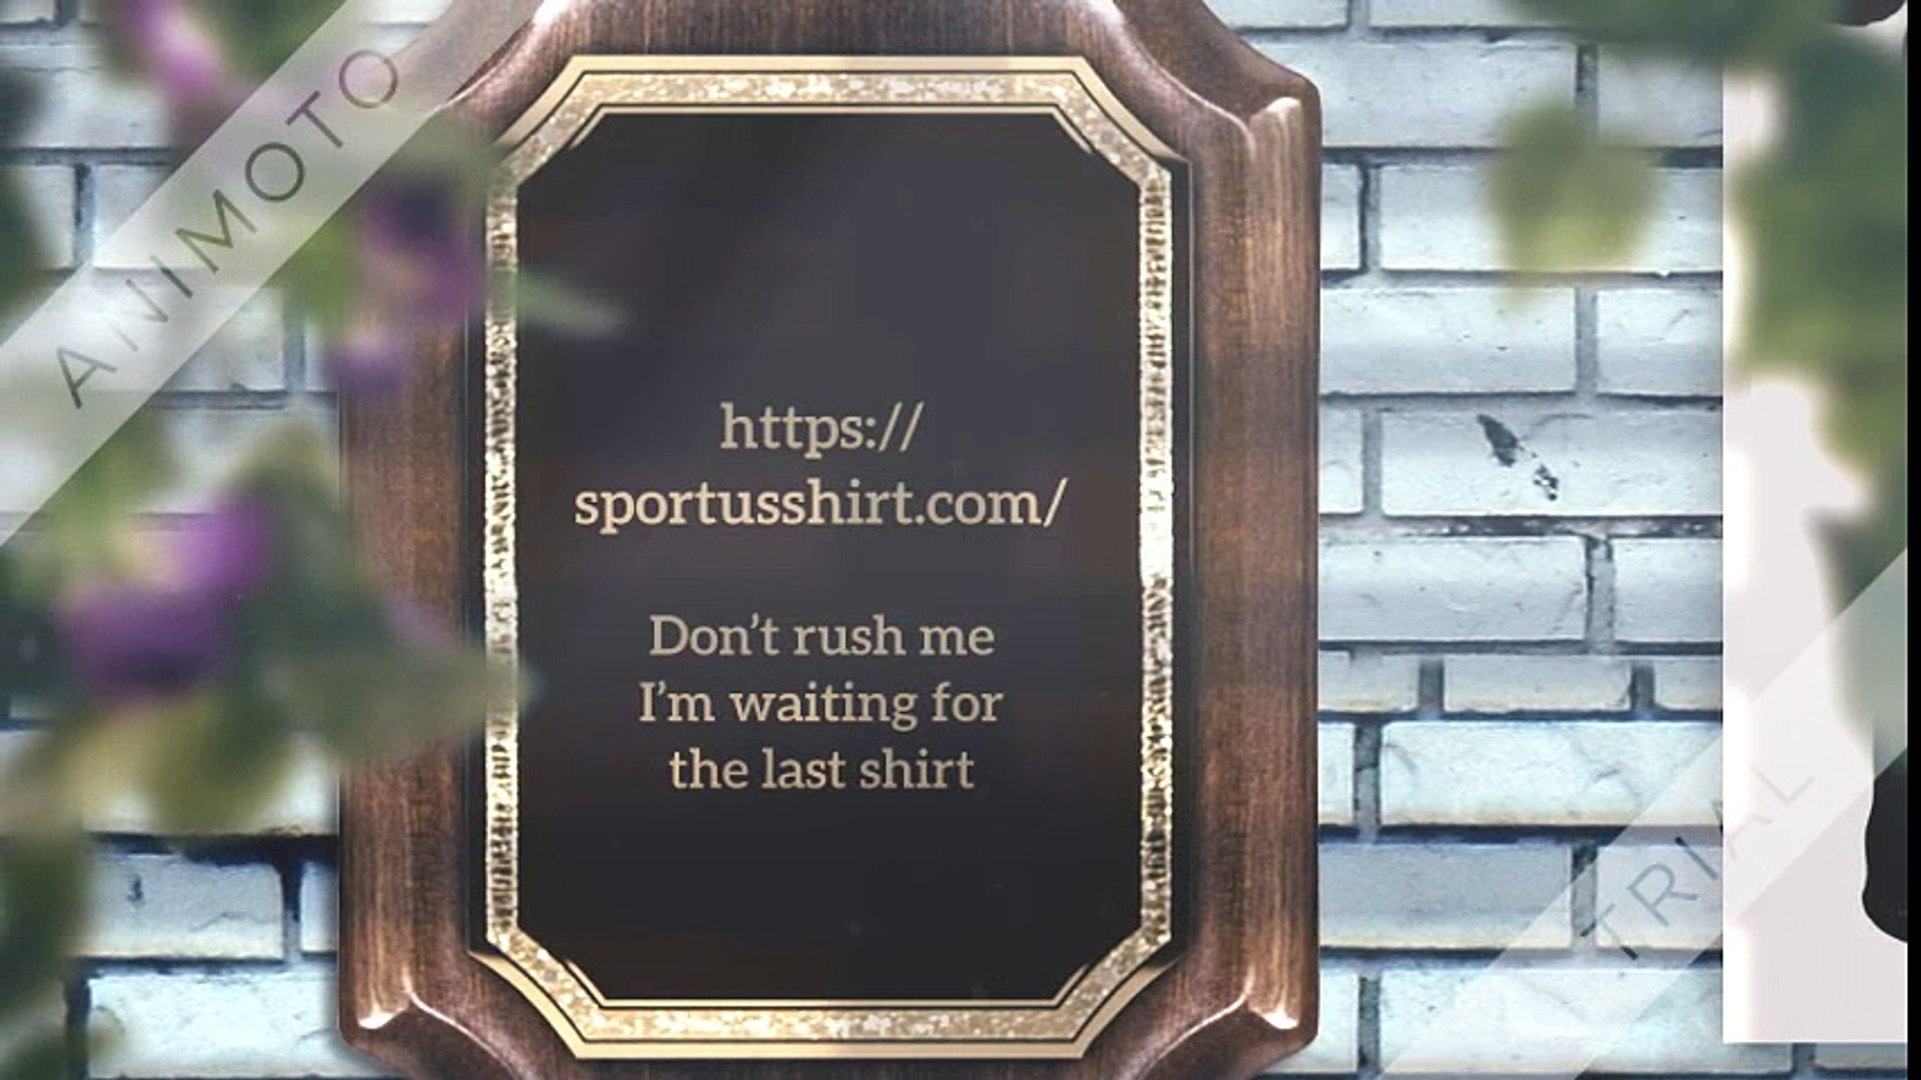 Don't rush me I'm waiting for the last minute shirt